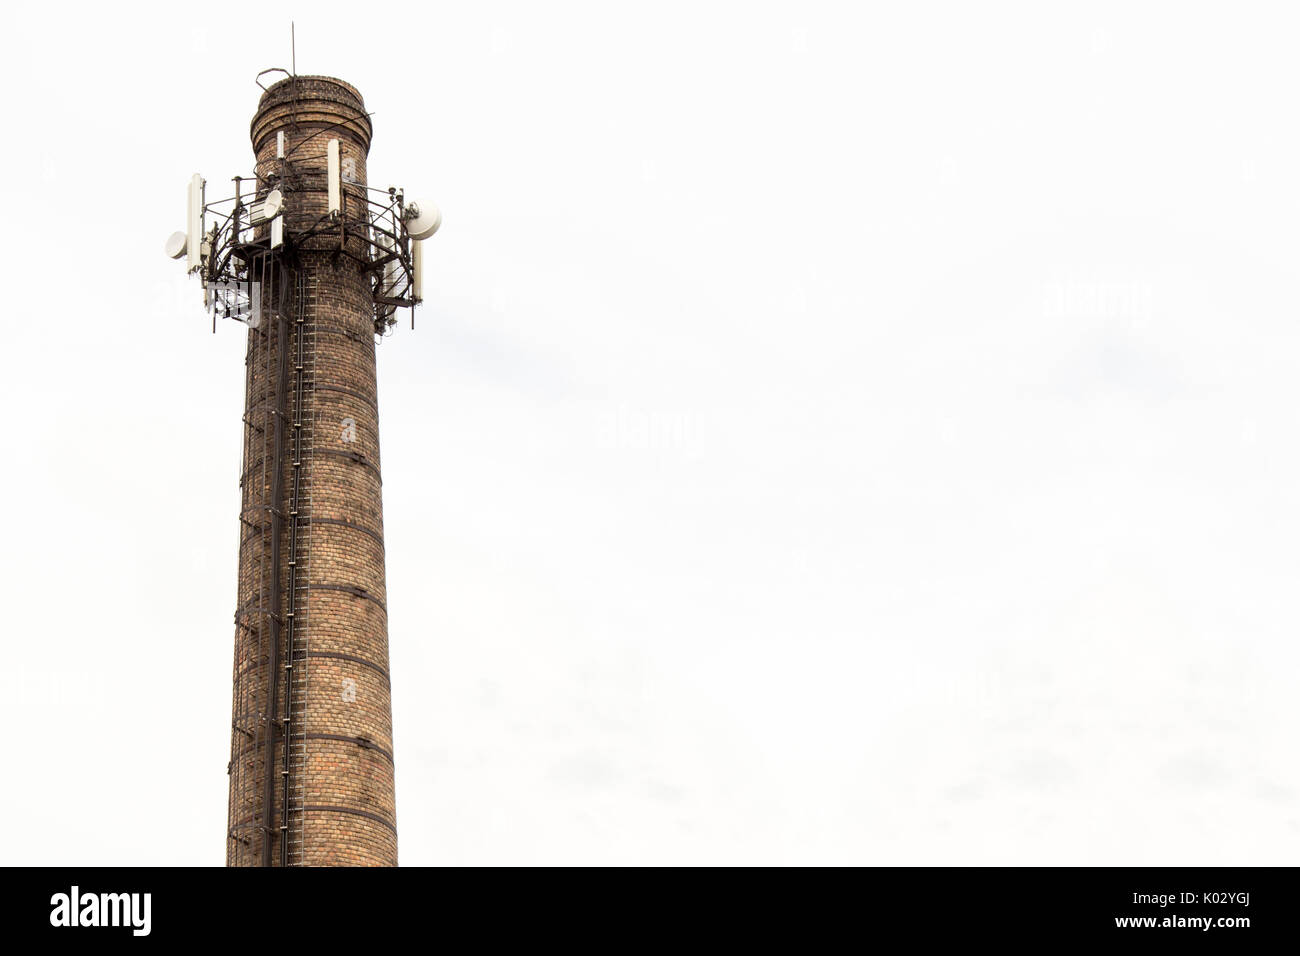 Old brick chimney with  antennas on cloudy sky background - Stock Image